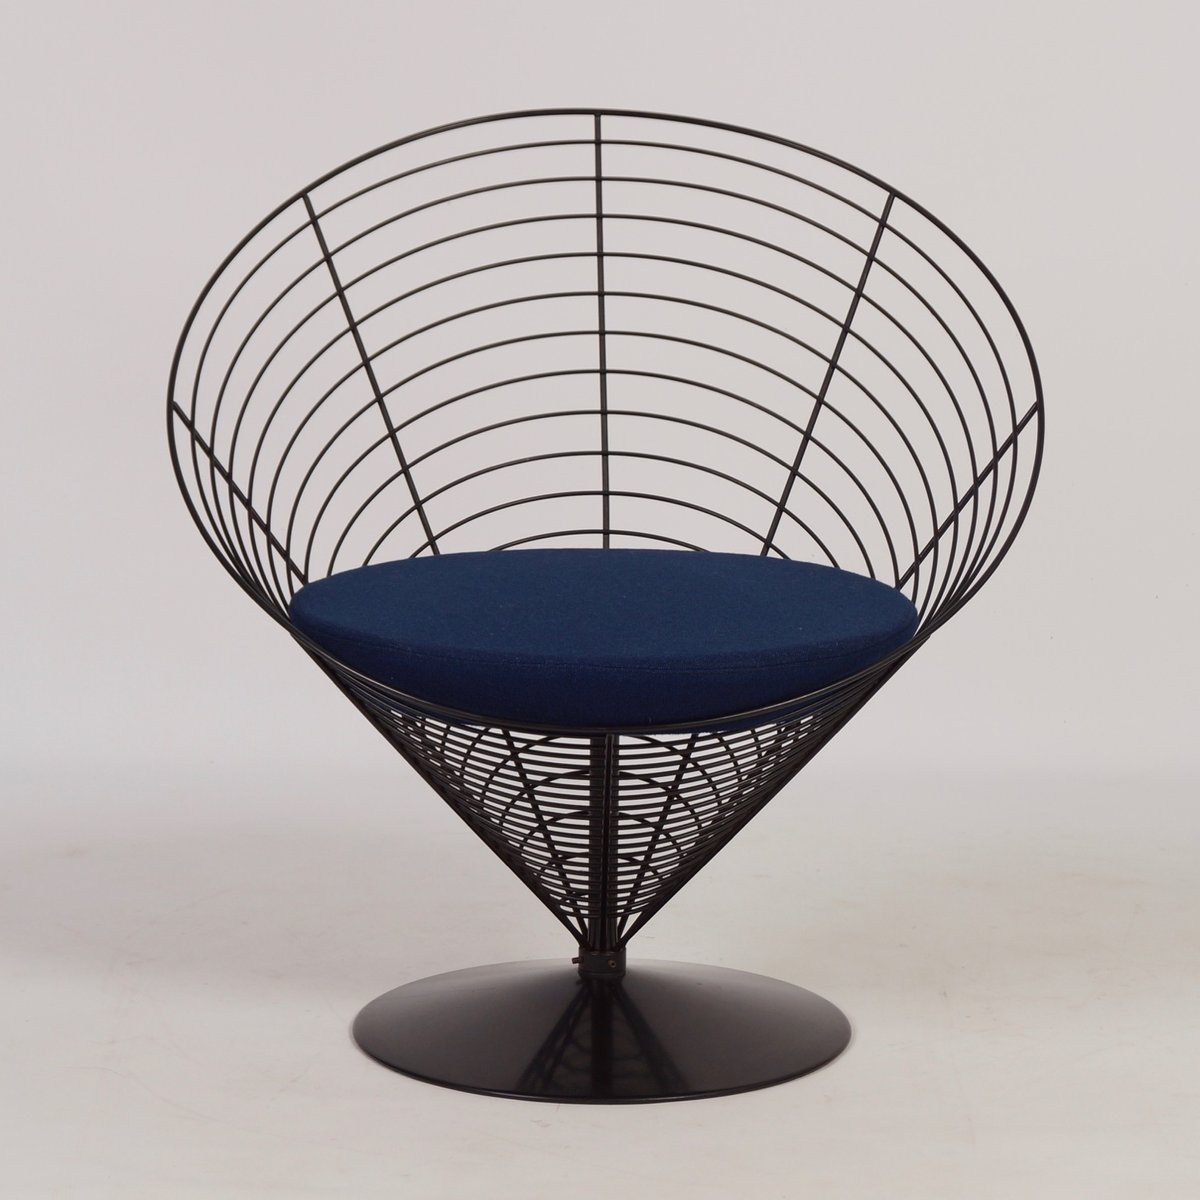 blue wire cone chair by verner panton for fritz hansen 1988 for sale at pamono. Black Bedroom Furniture Sets. Home Design Ideas